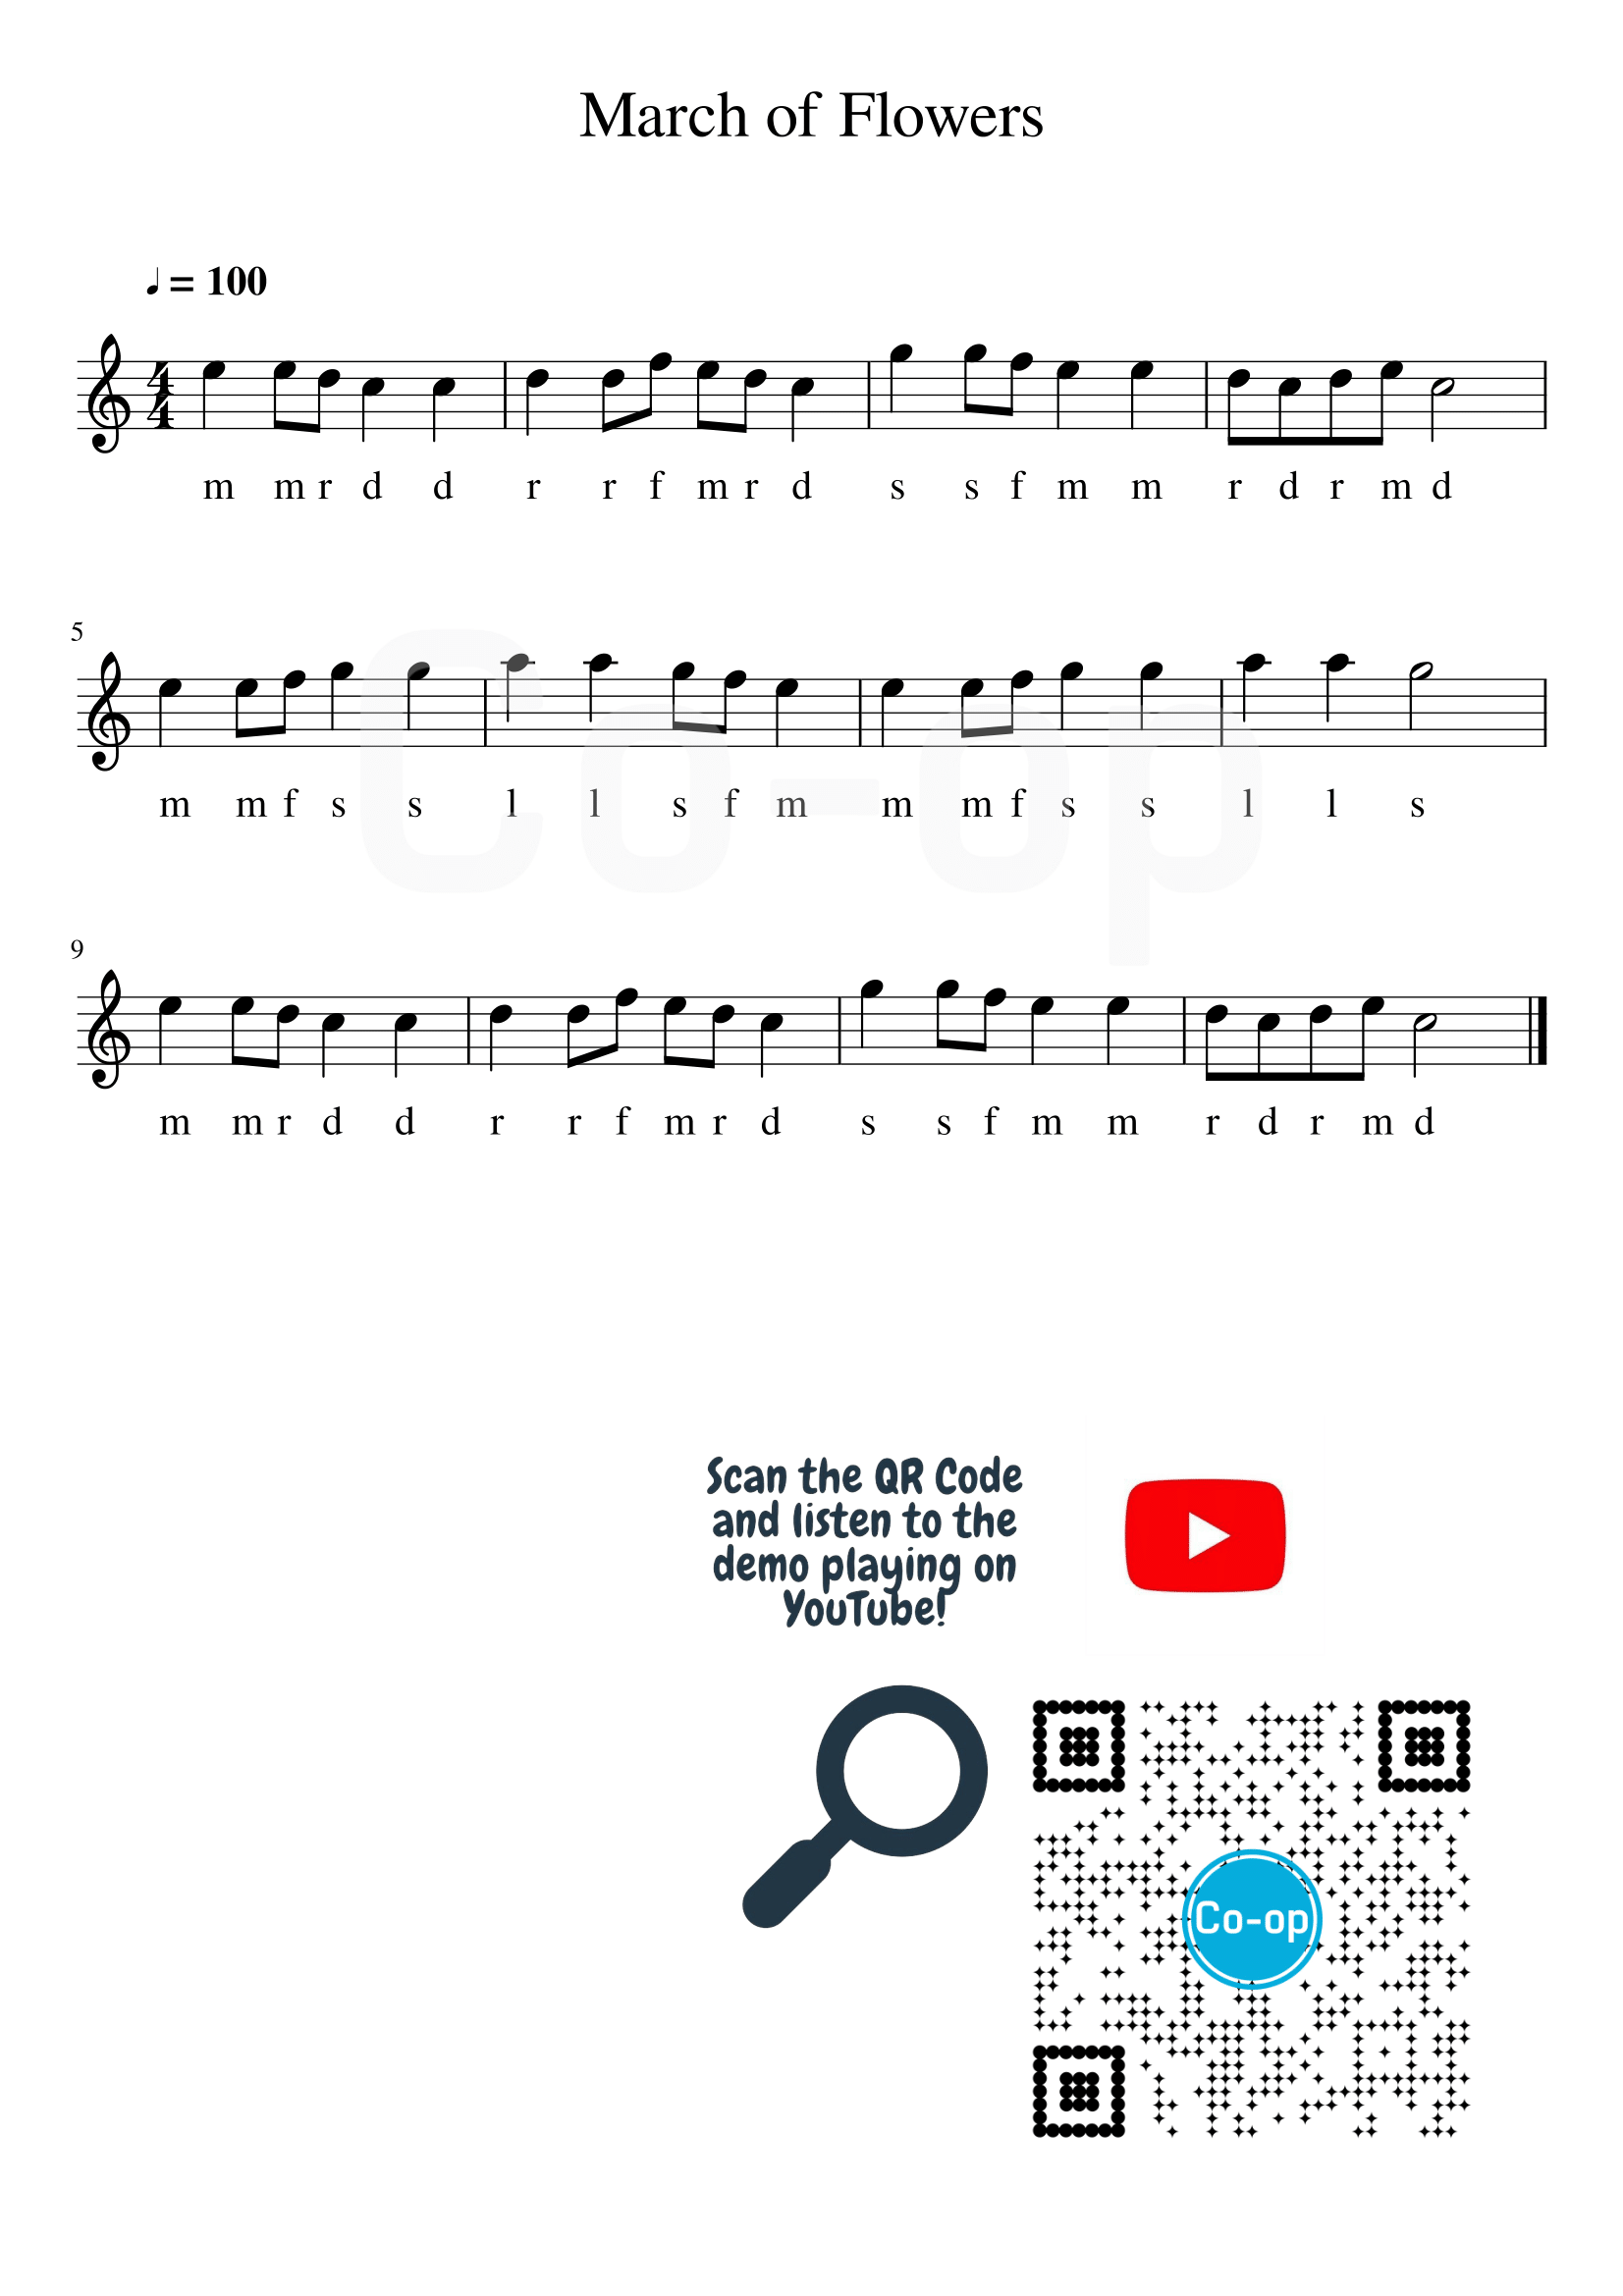 March of Flowers | Solfege Notation | Free Sheet Music